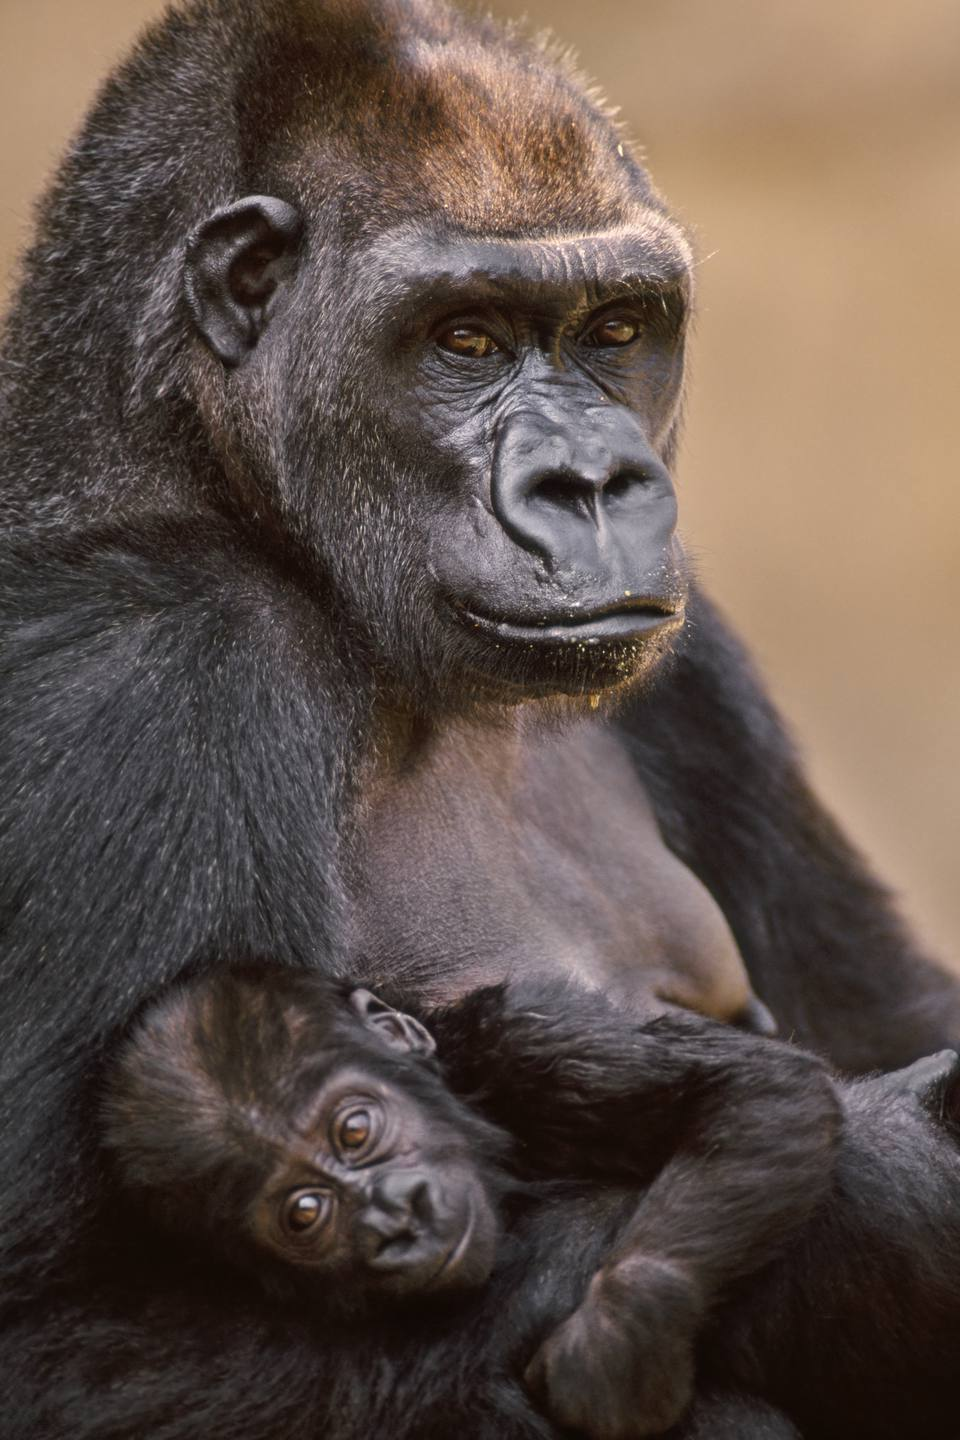 Gorilla holding its young